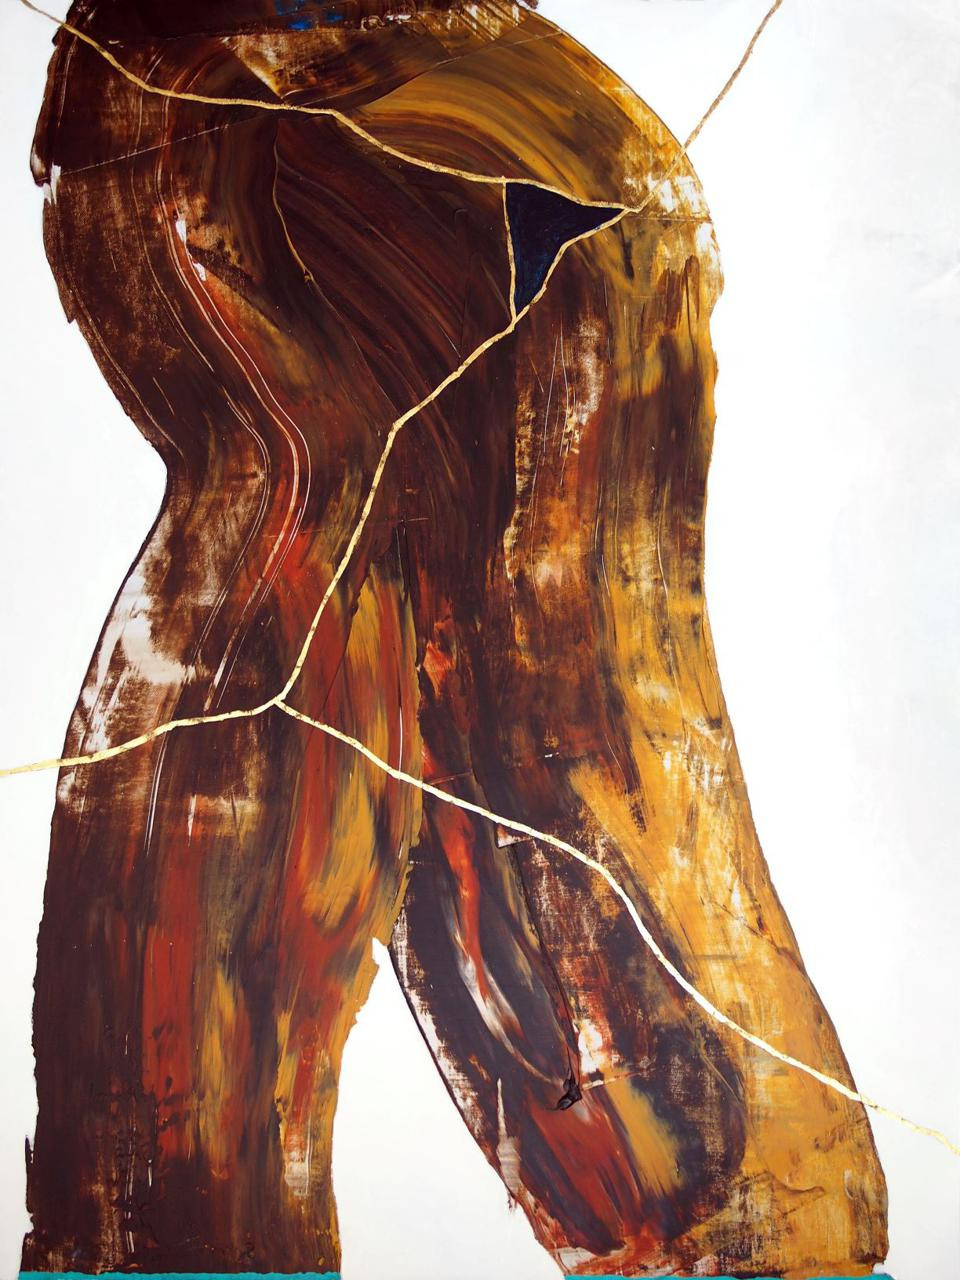 painting in brown